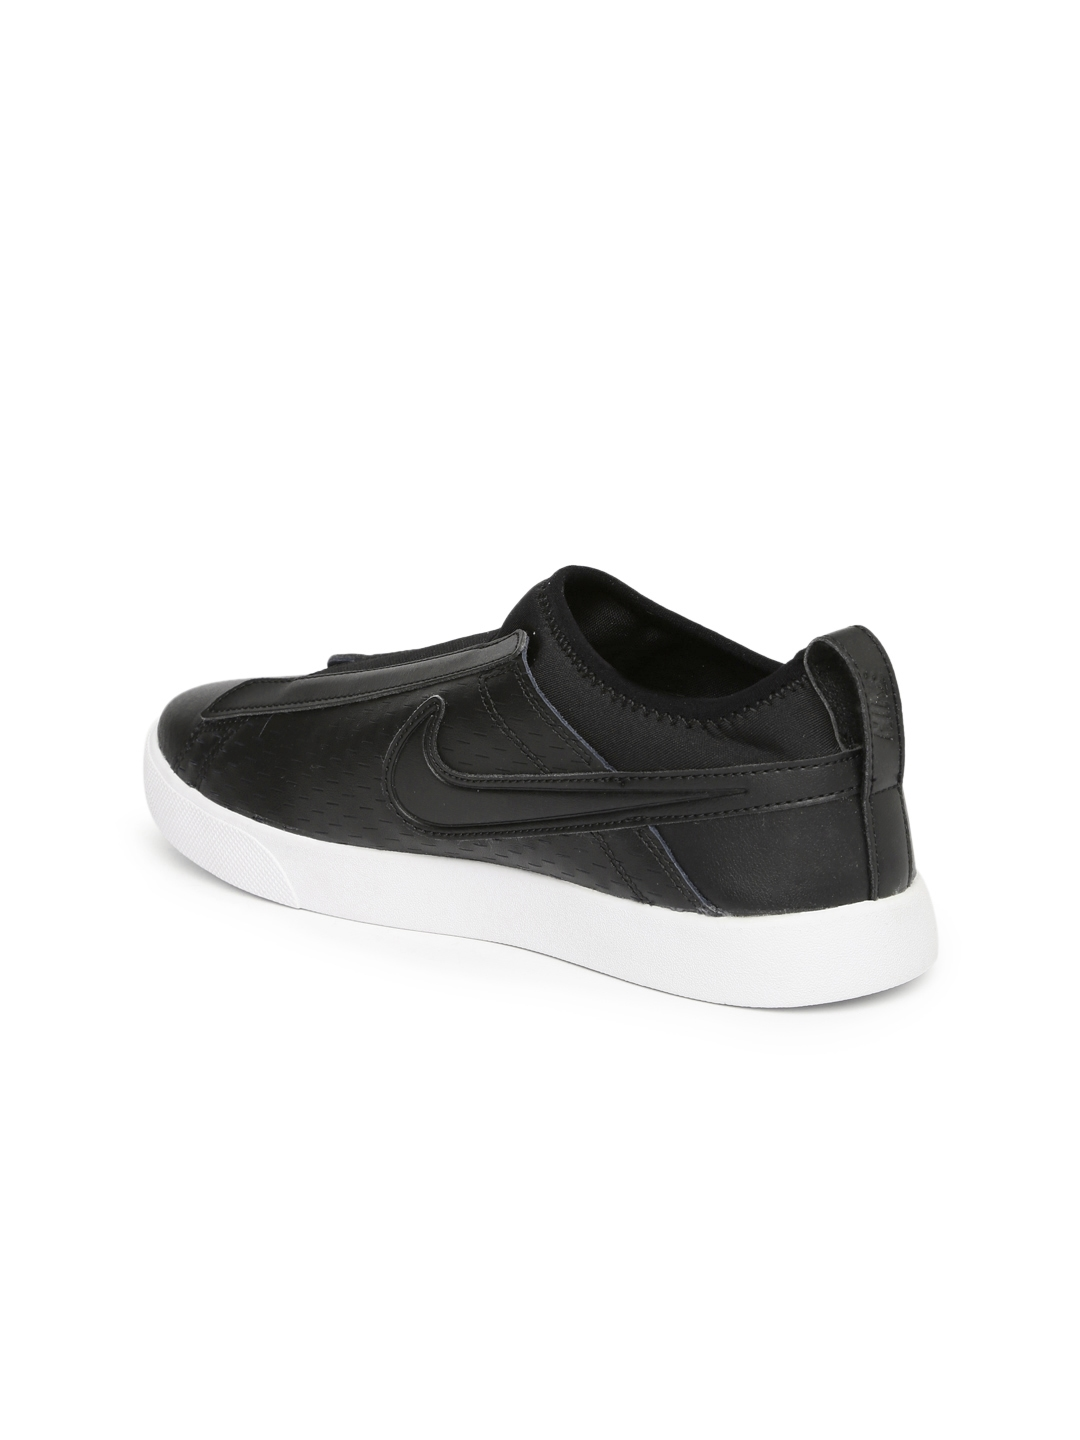 3048d482471ed Buy Nike Women Black Leather Racquette 17 Slip On Sneakers - Casual ...